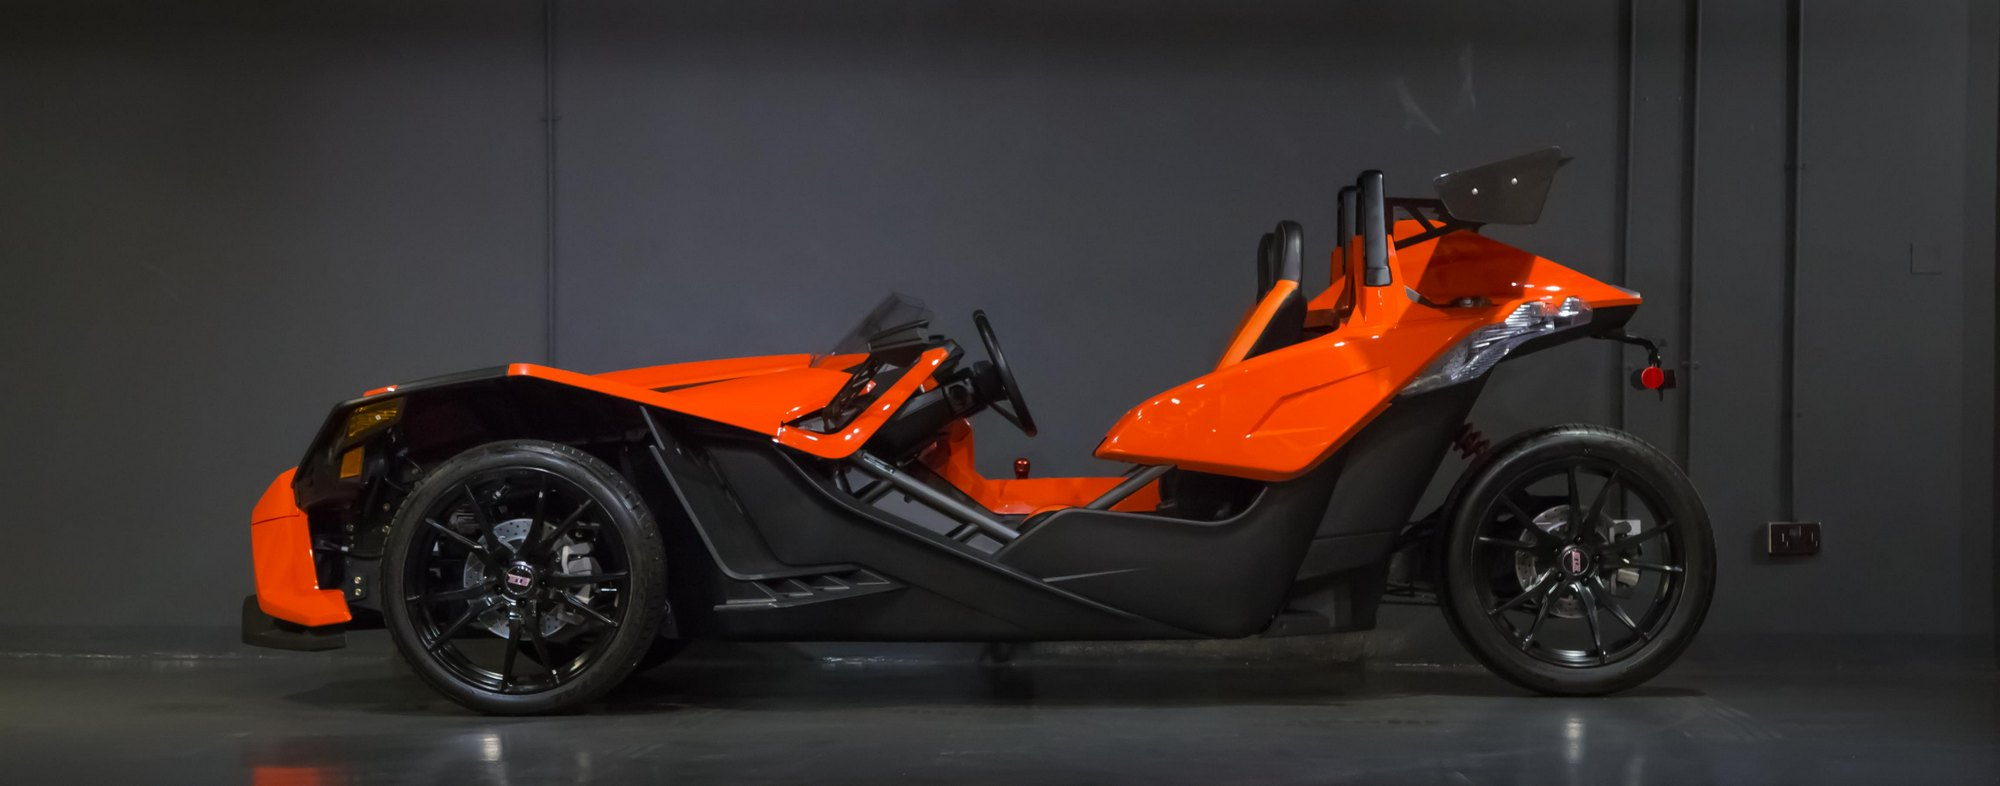 2016 Polaris Slingshot >> 2016 Polaris Slingshot Motorcycle